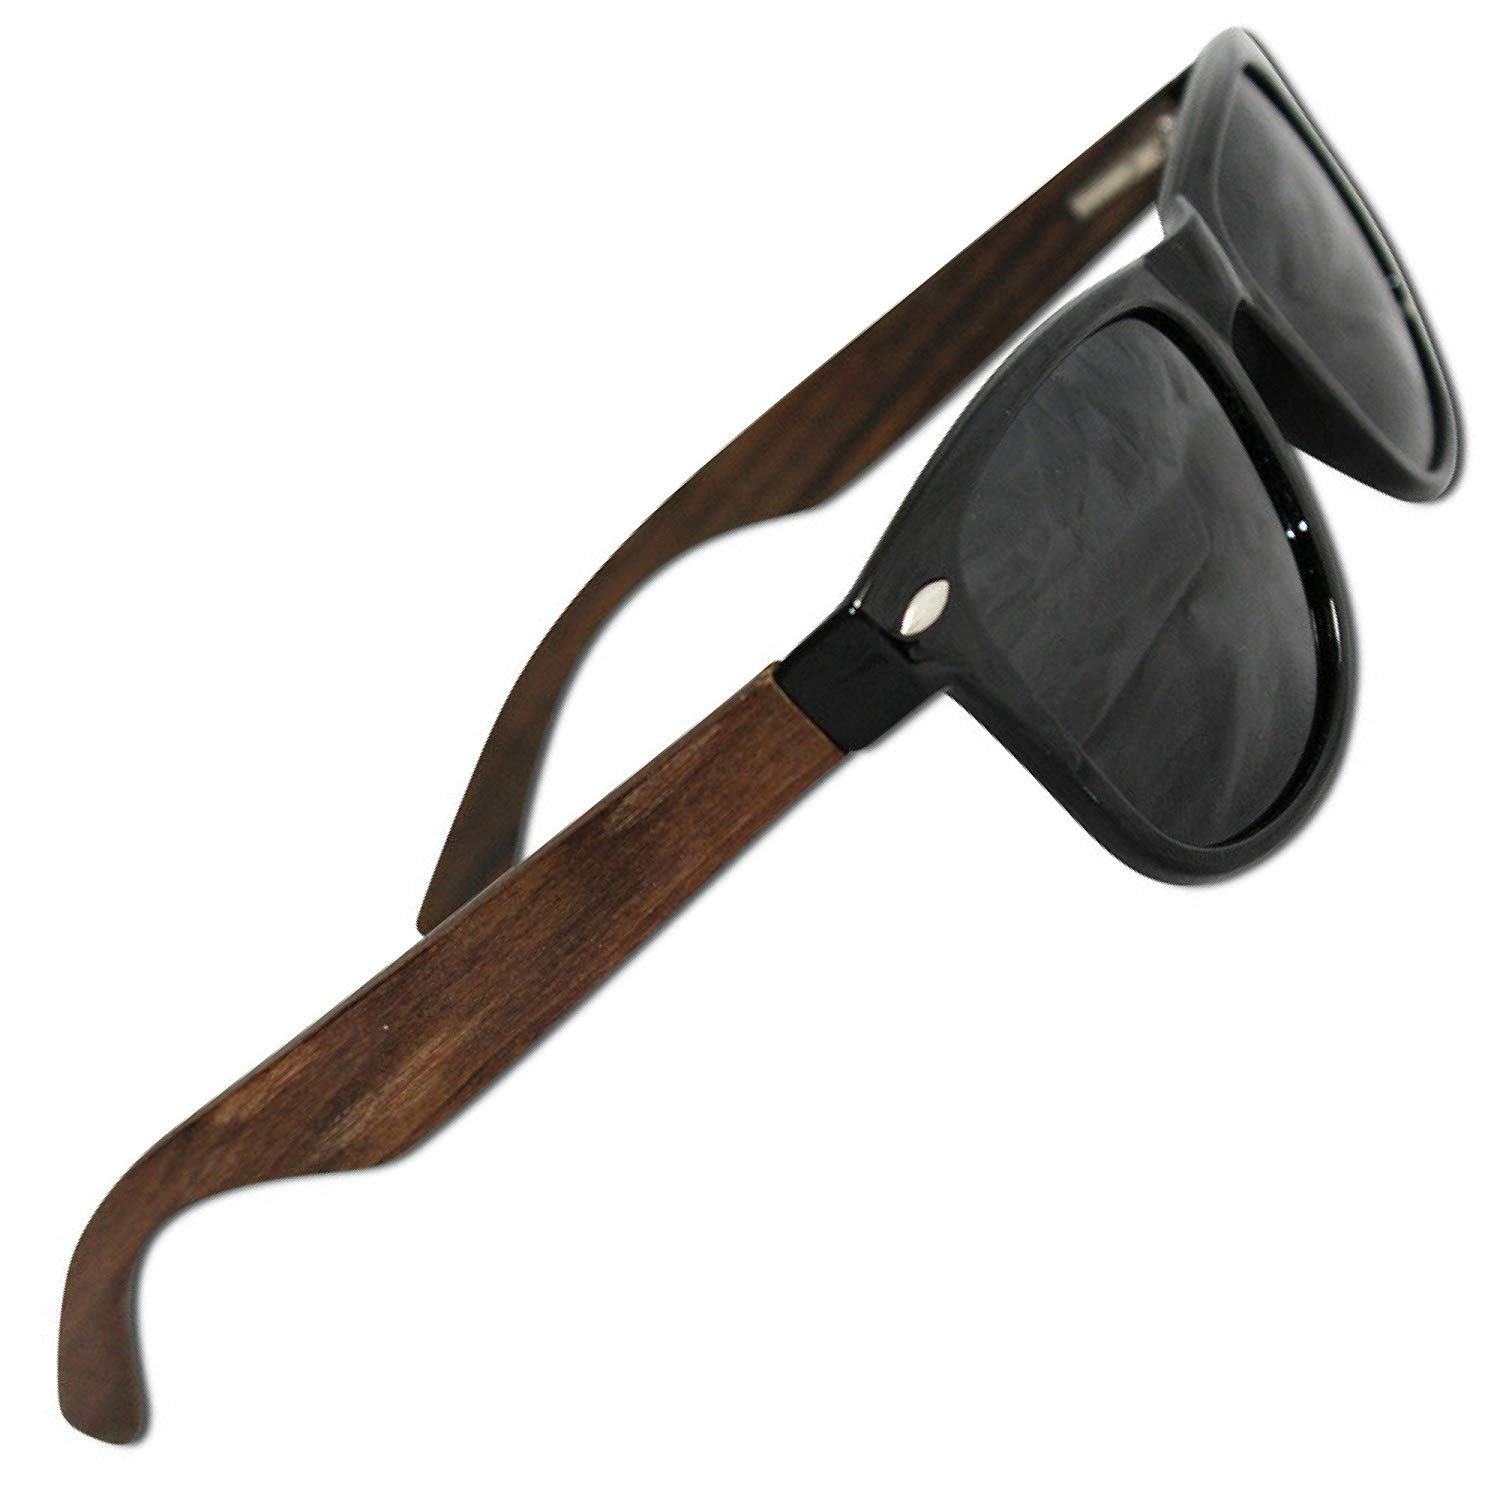 Polarized Wood Sunglasses for Men & Women with 100% UV Blocking, HD Lenses (Ebony Wood Temples | Glossy Black Front Frame | Grey High Defintion Polarized Lenses)